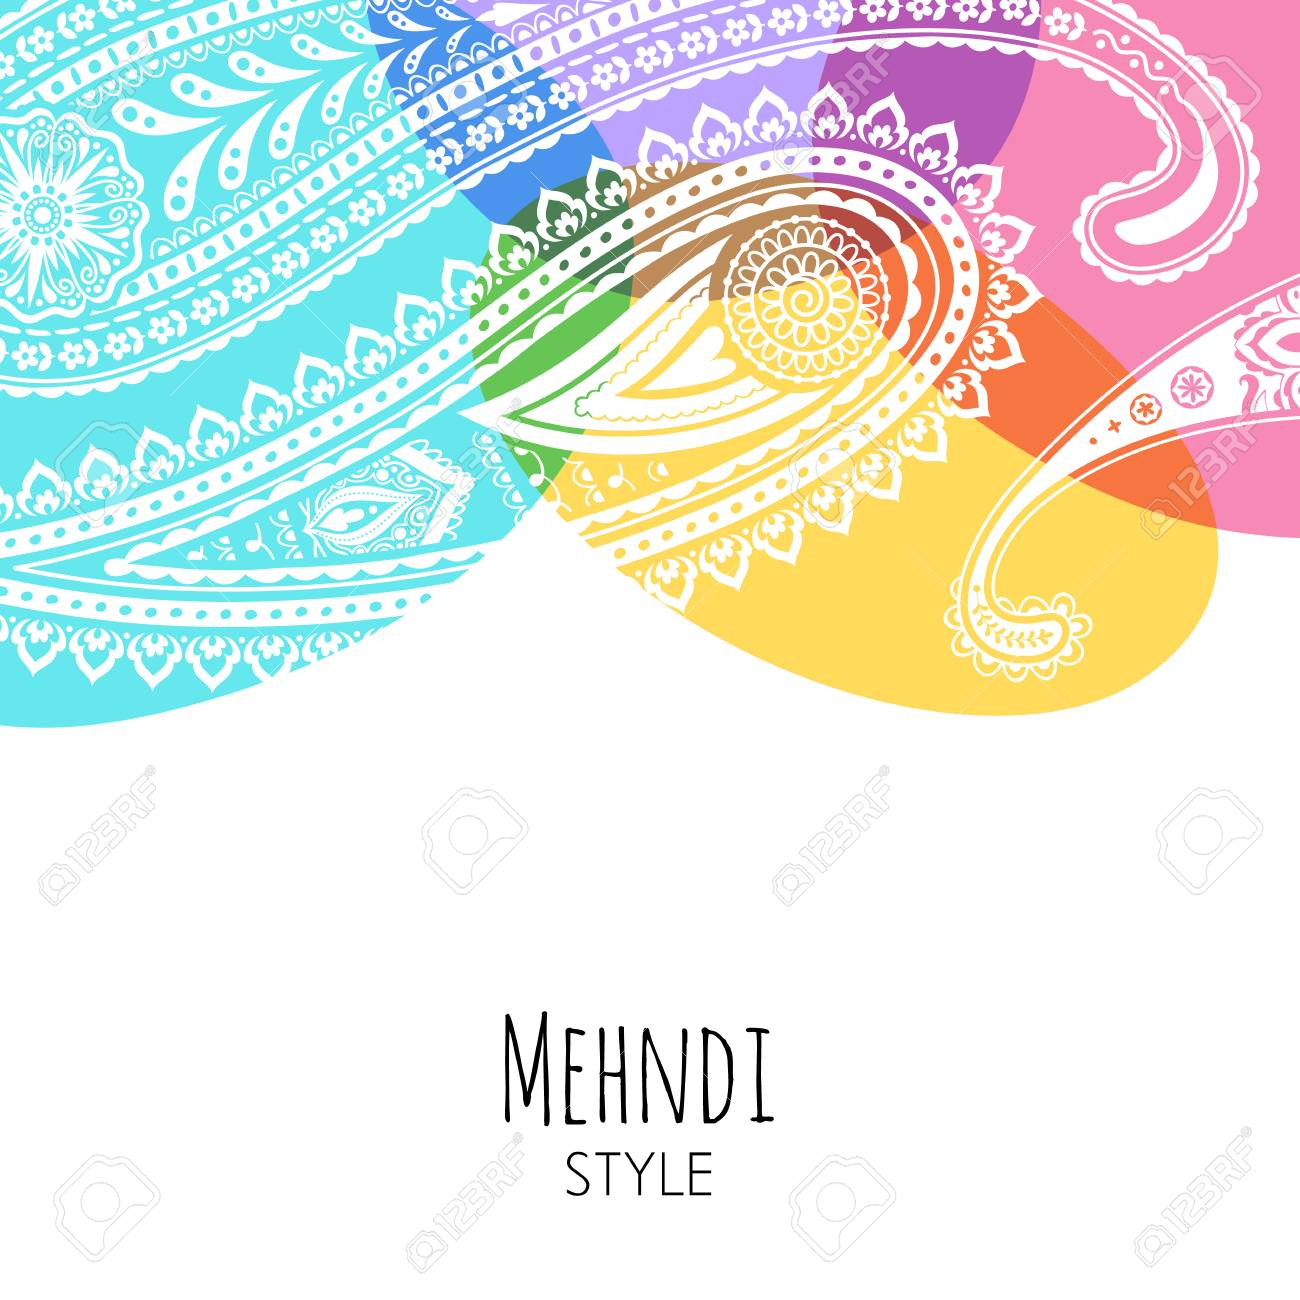 Colorful Paisley Vector Illustration Indian Background Yoga Royalty Free Cliparts Vectors And Stock Illustration Image 115046213